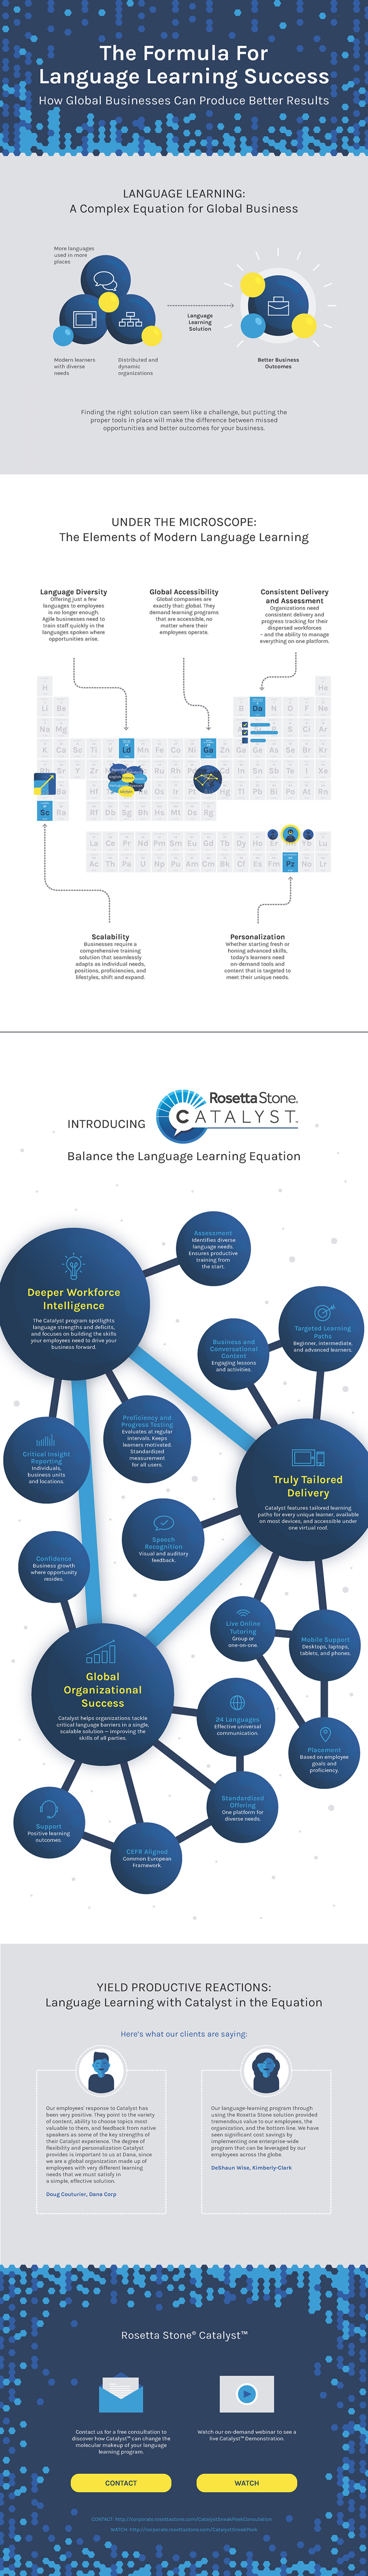 The Formula for Language-Learning Success Infographic